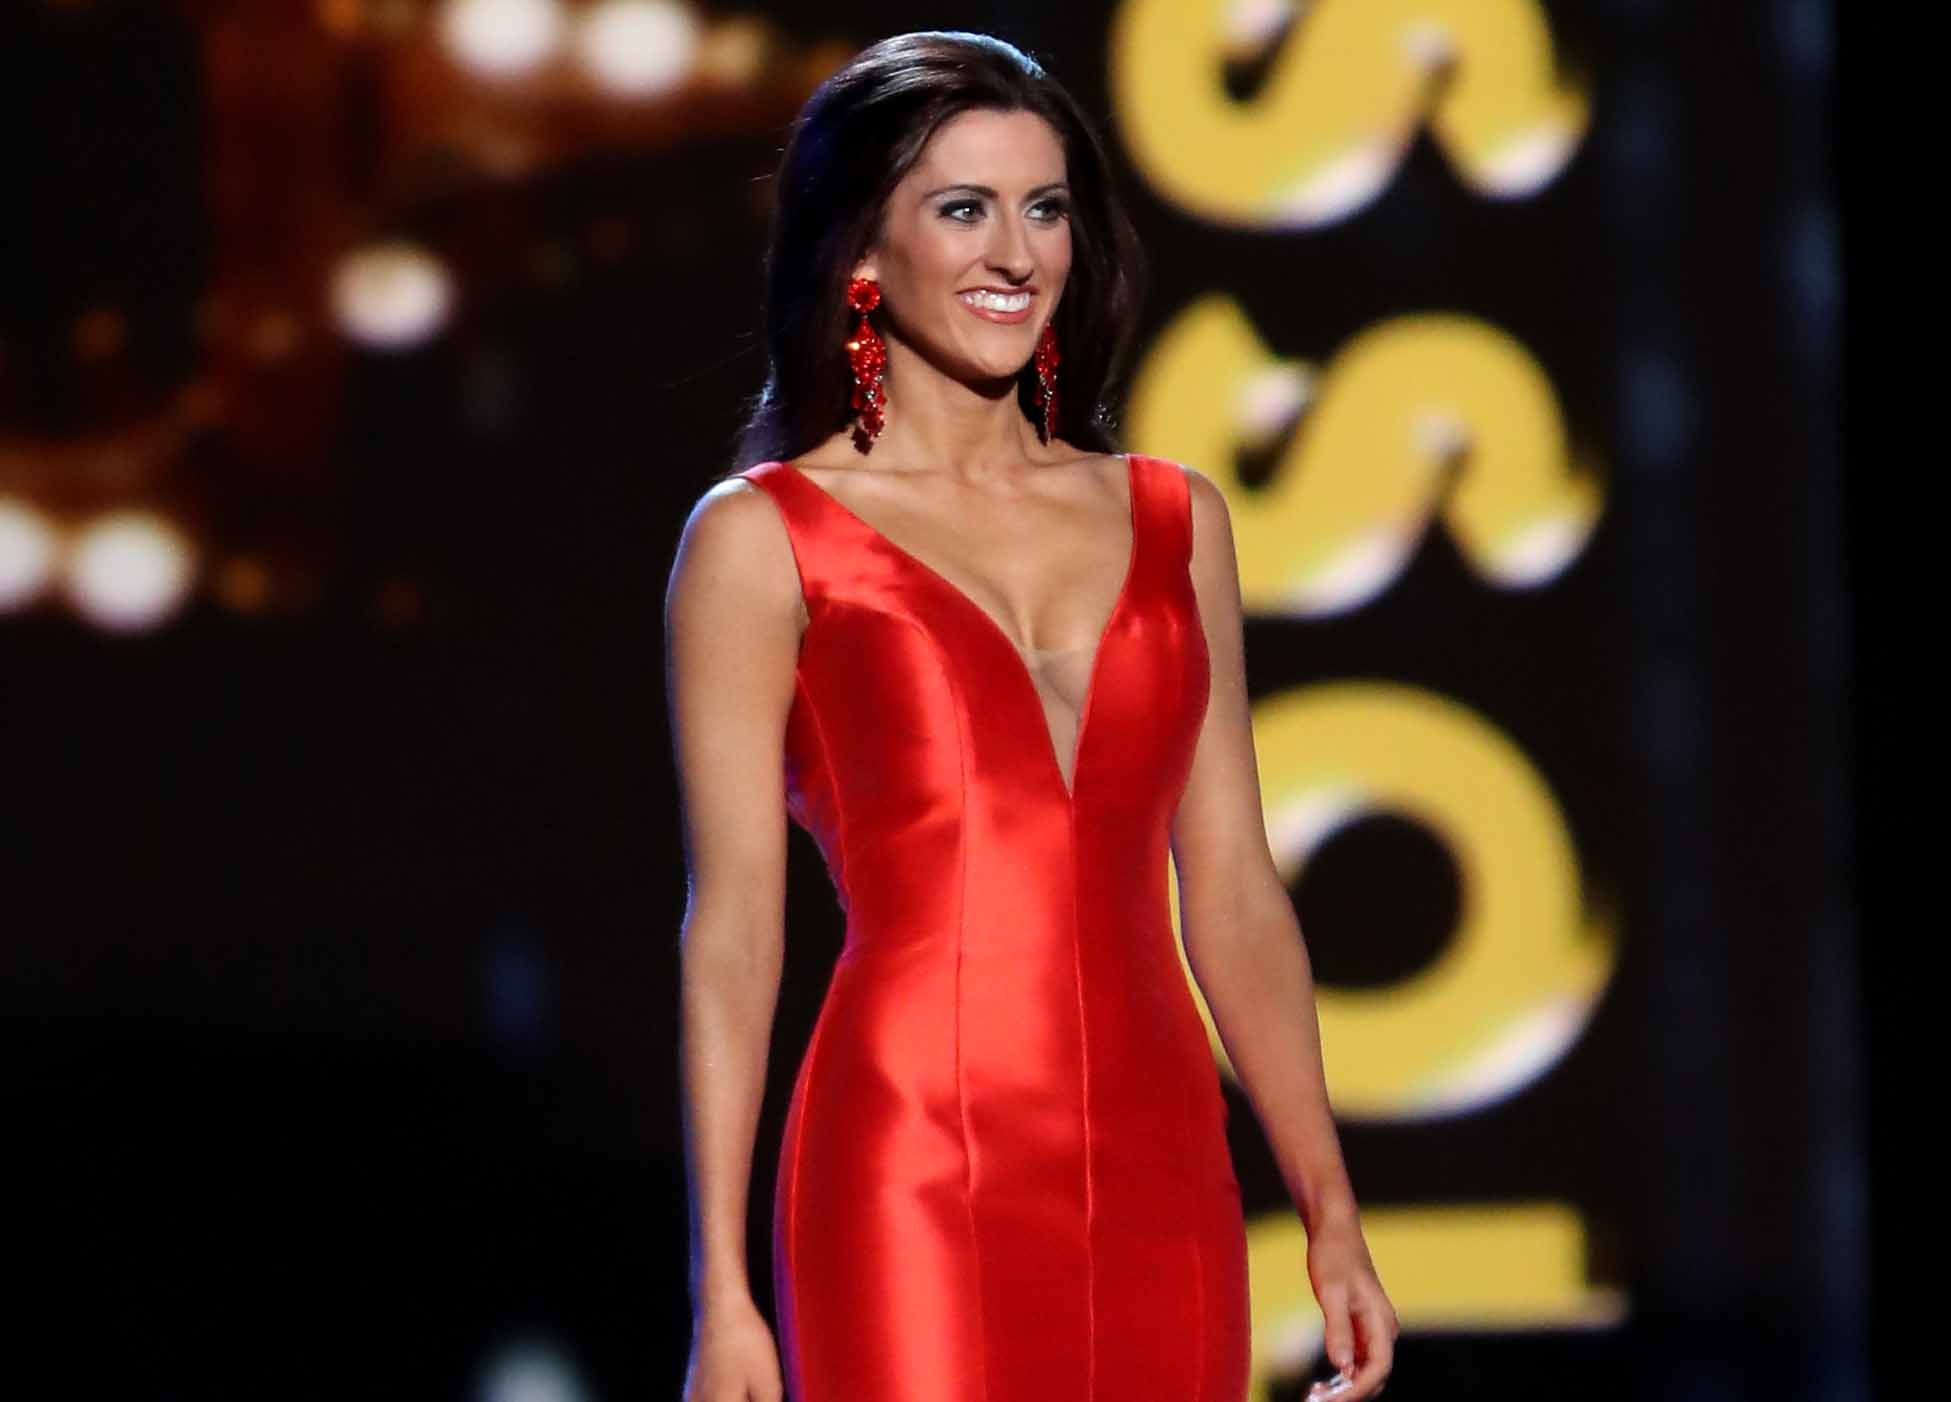 Miss Missouri Erin O'Flaherty Is First Openly Lesbian Contestant In Miss America Pageant